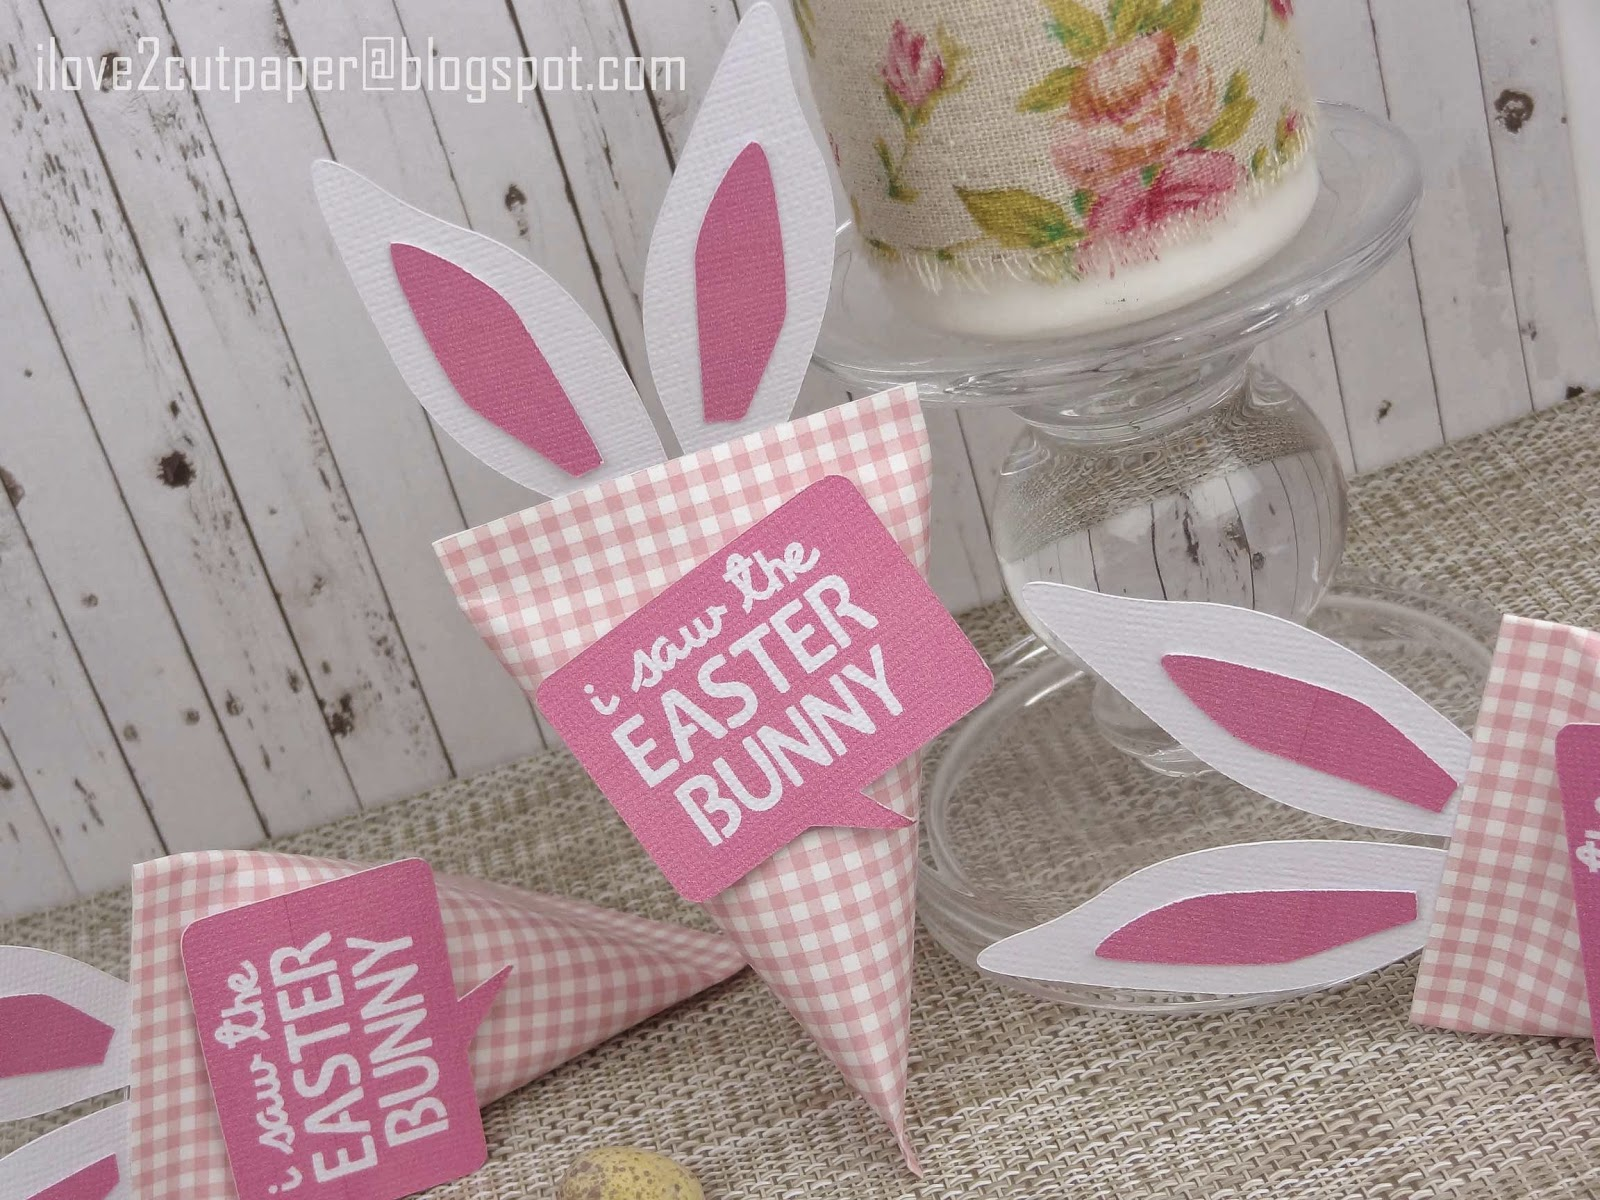 Easter, lettering delights, pazzles inspiration vue, sour cream containers